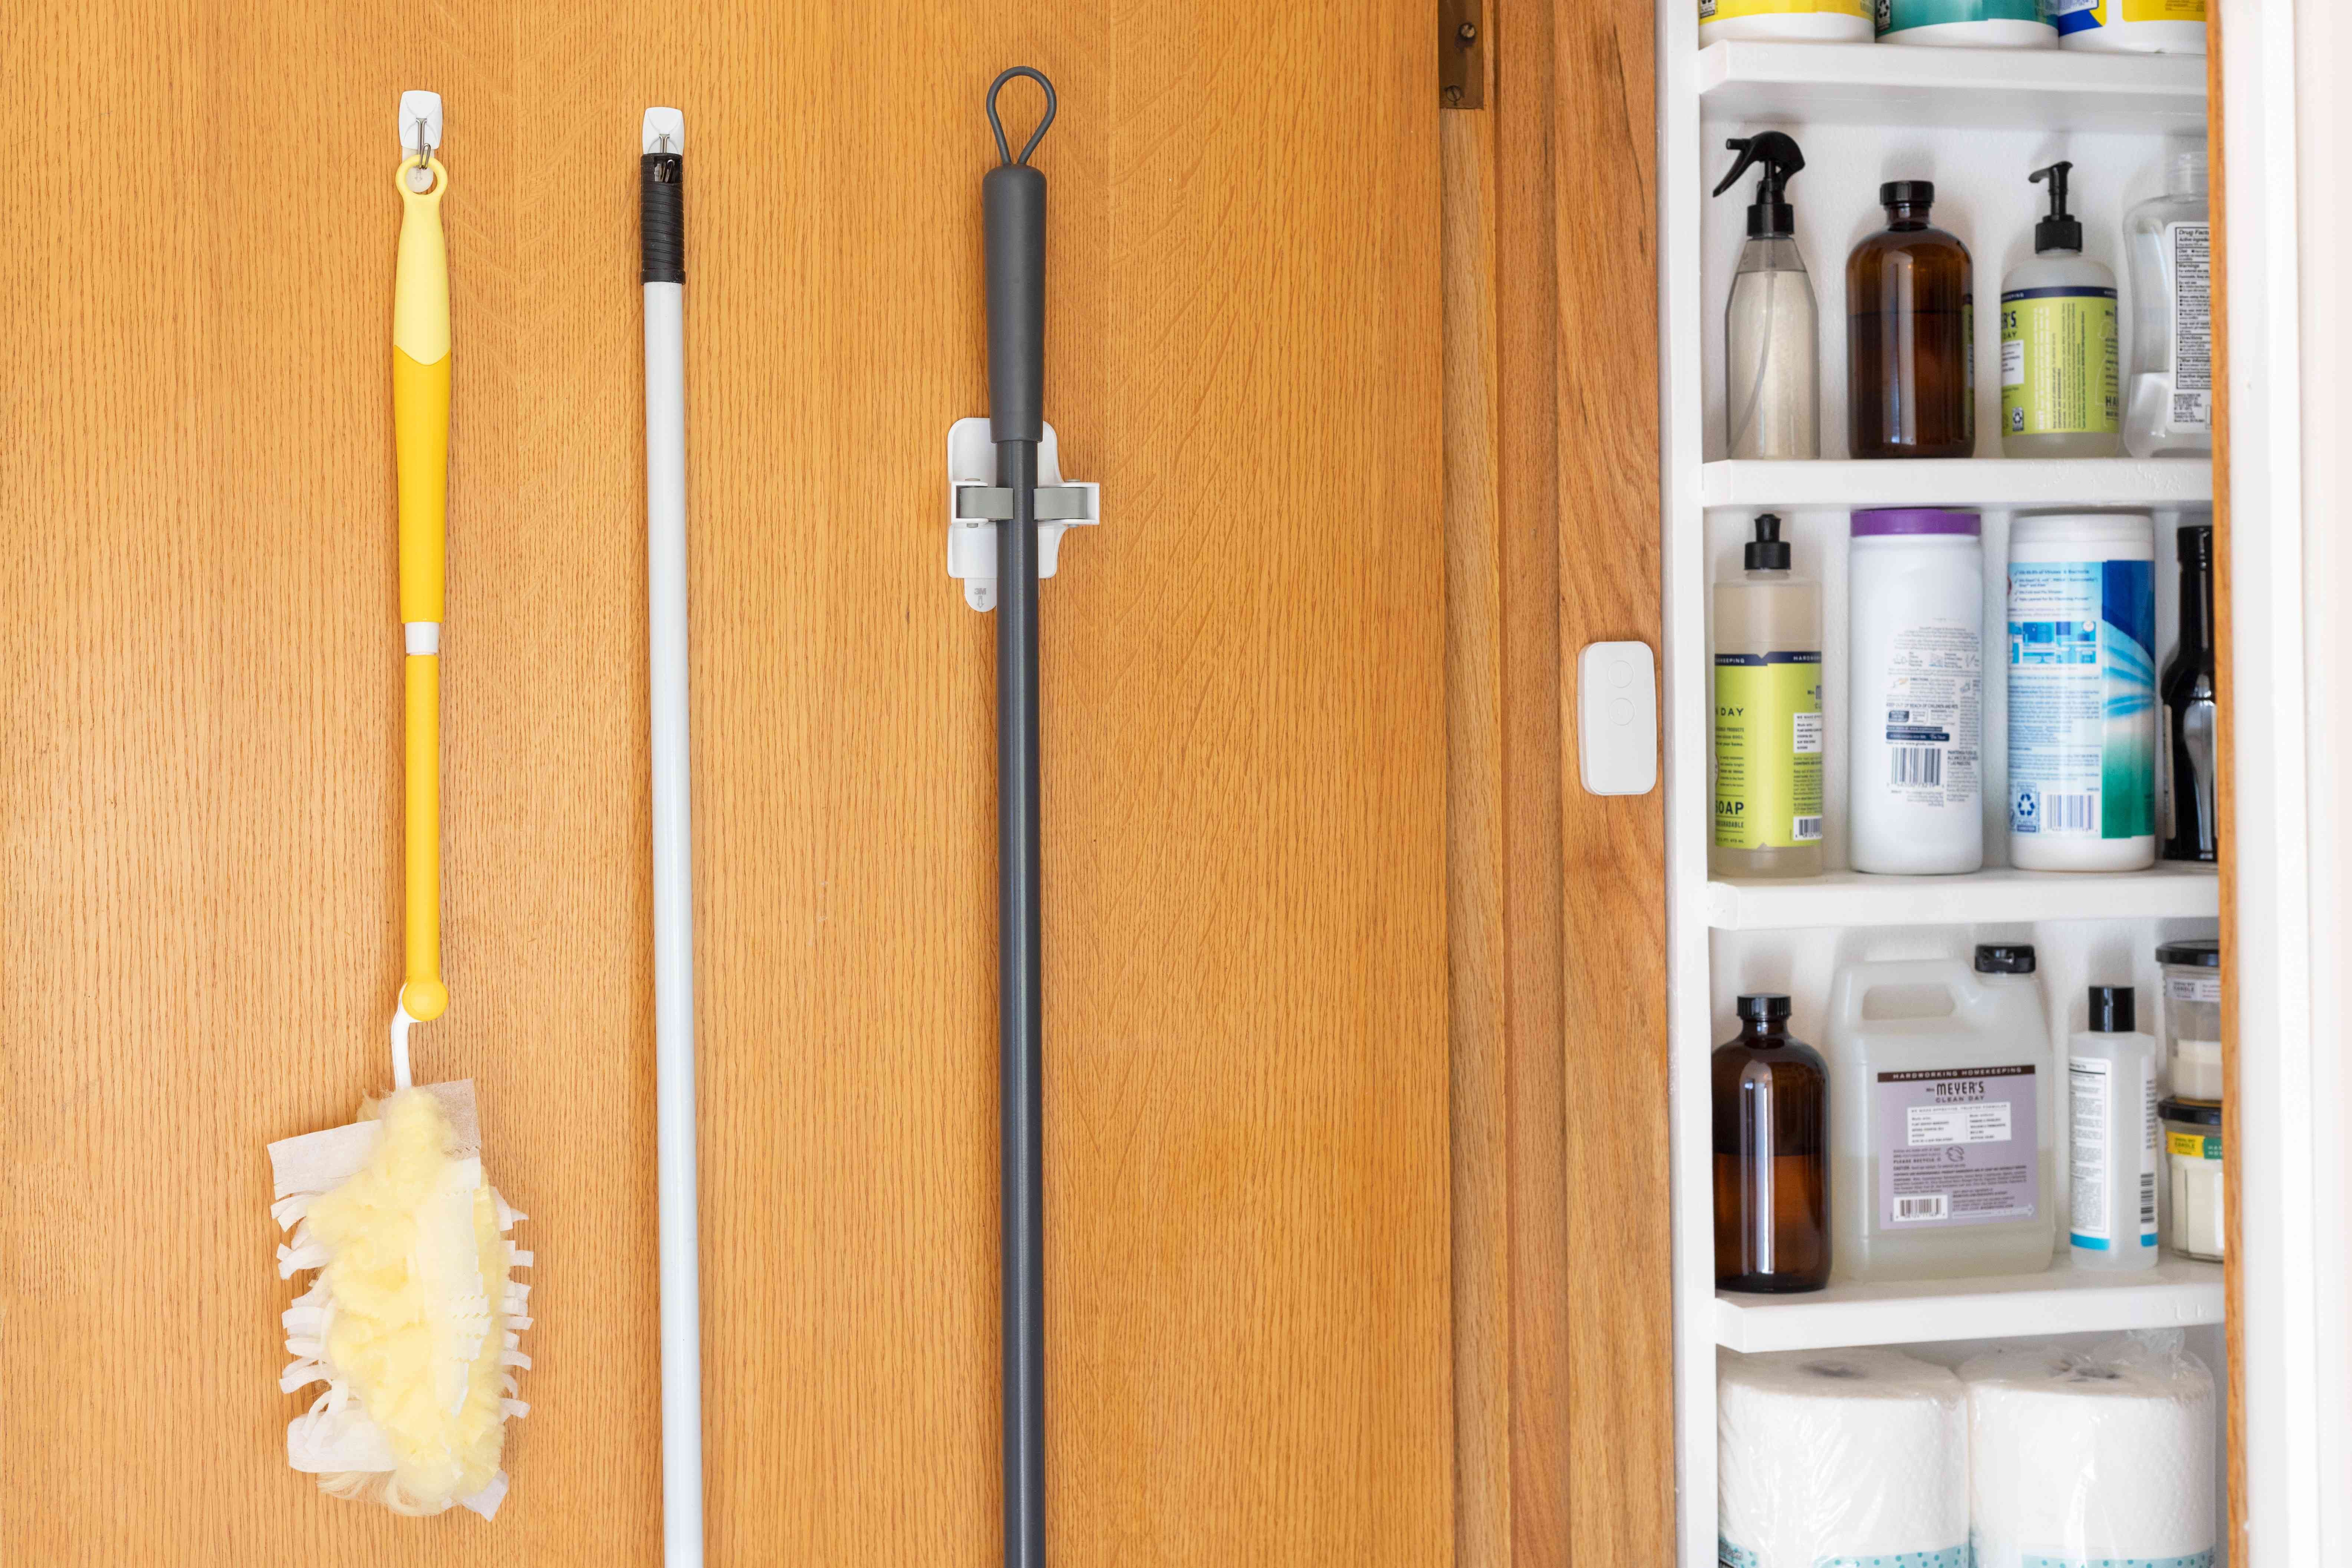 Broom and dust brush handles hanging vertically on door for storing